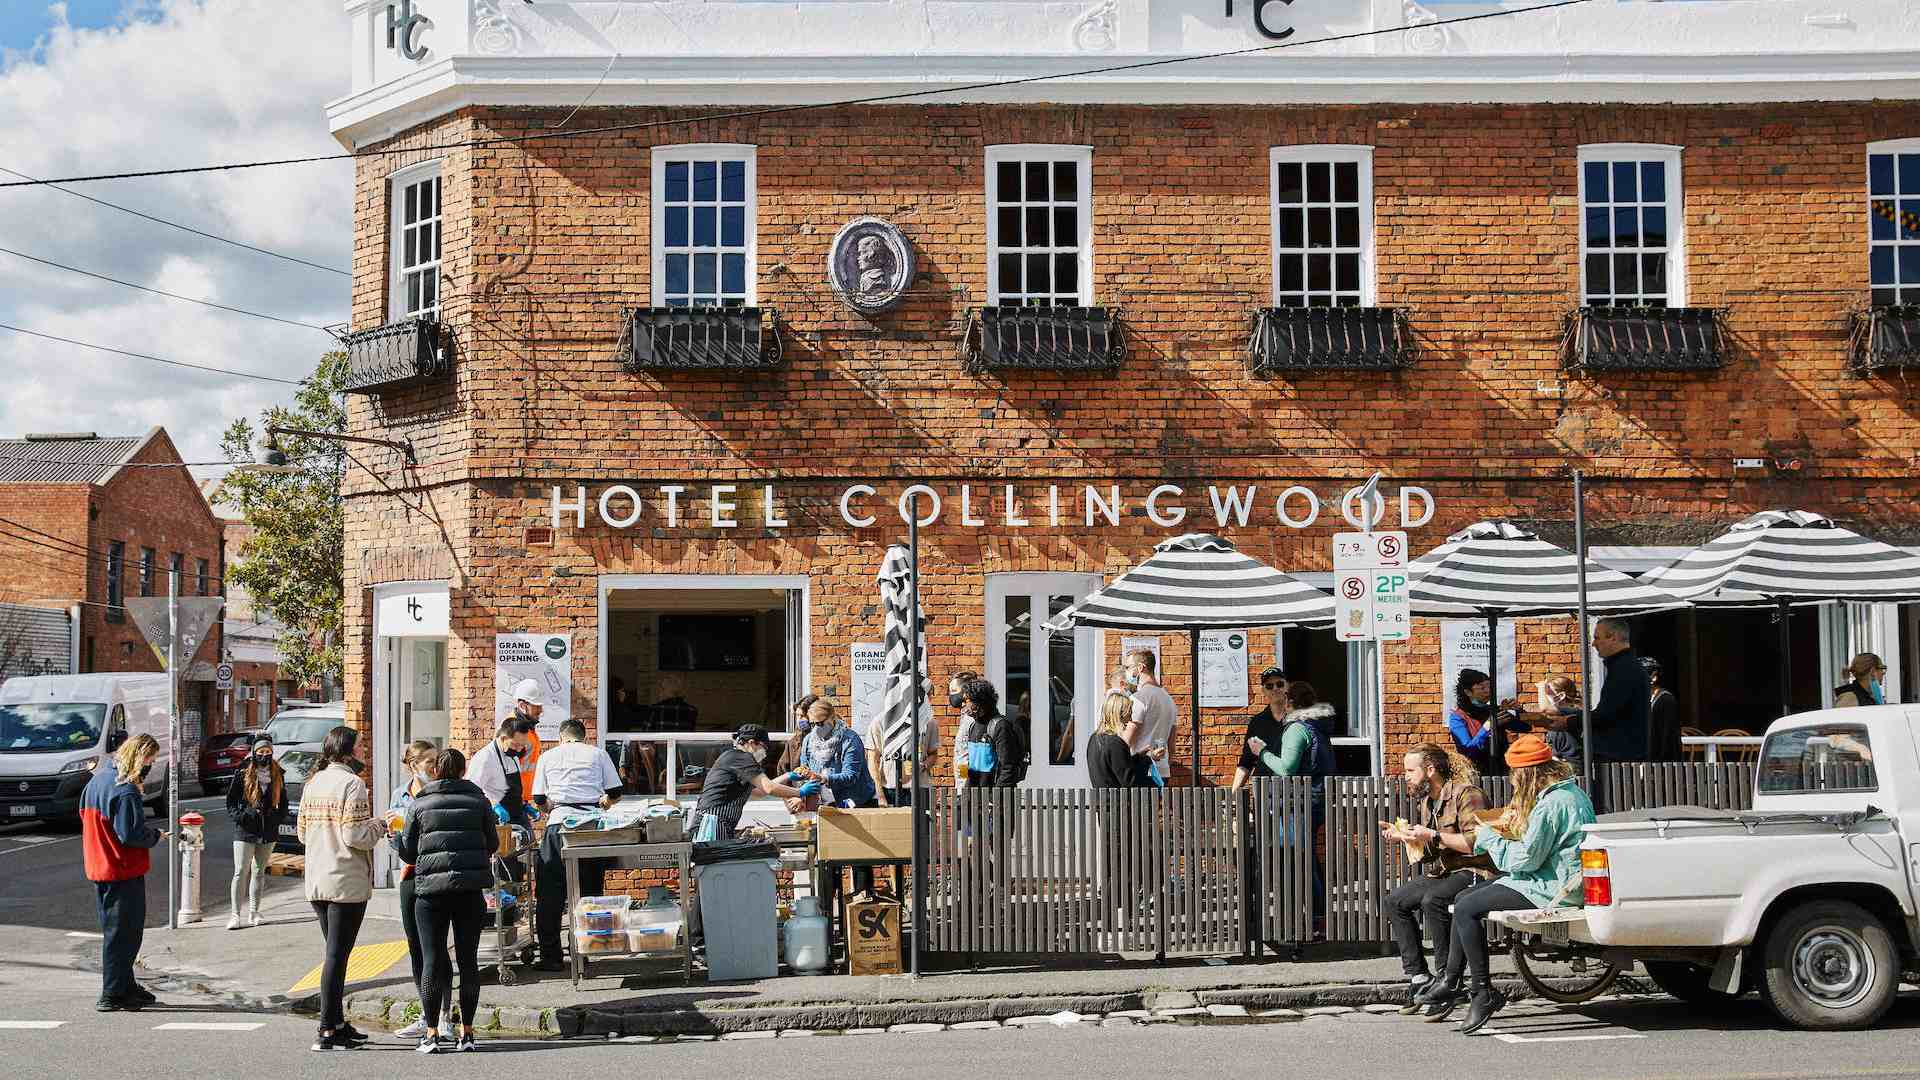 Hotel Collingwood Is the New Northside Pub Launching in the Former Robbie Burns Site This Week